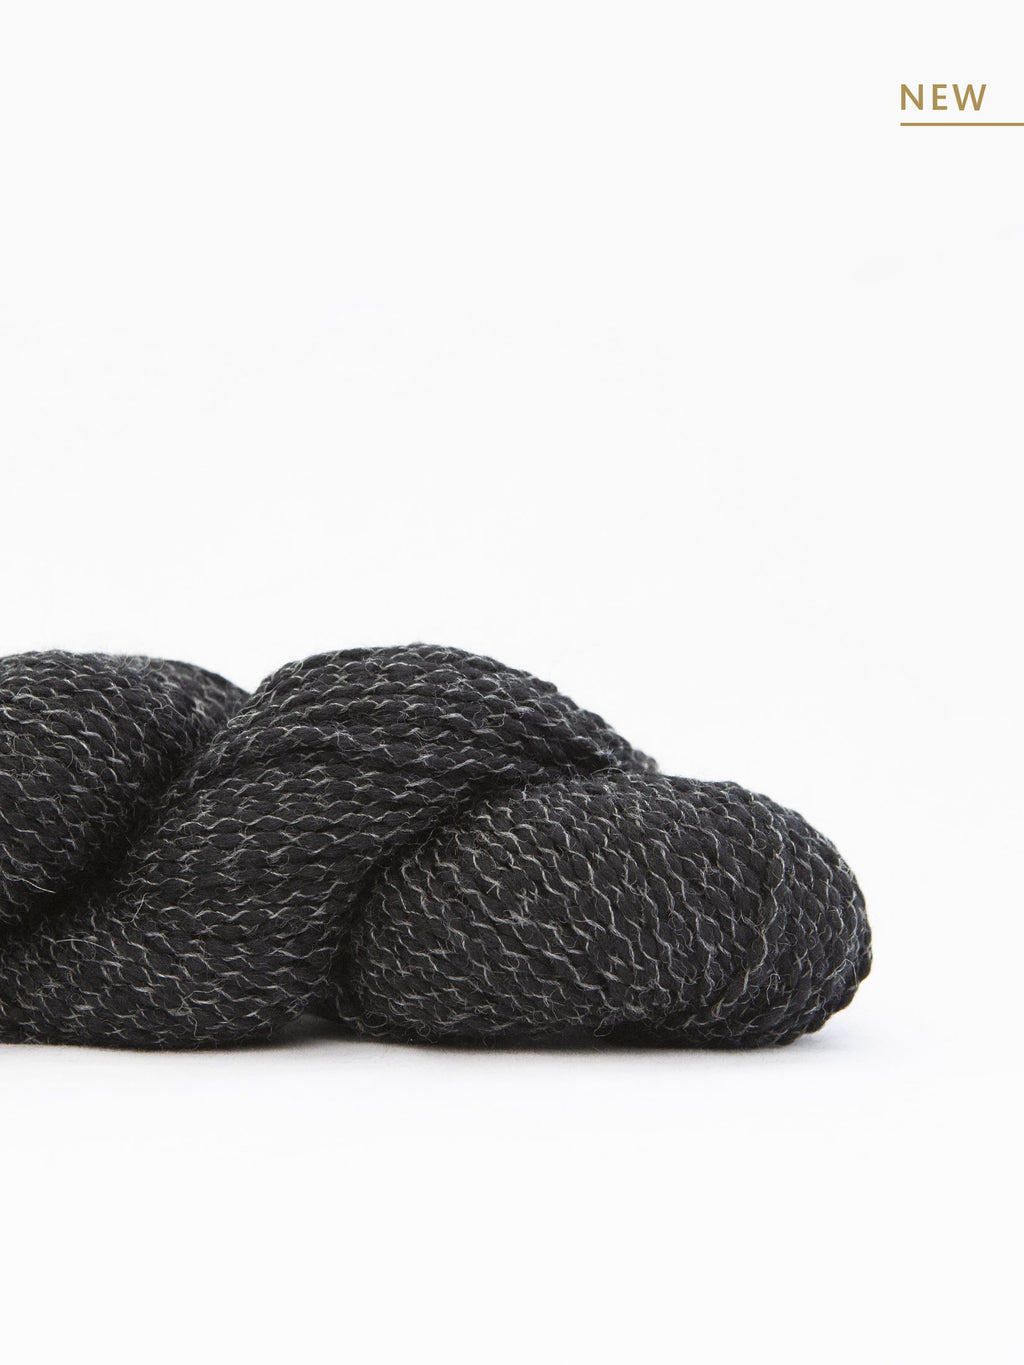 Shibui Knits Nest Yarn with Fine Highland-Alpaca wool blend